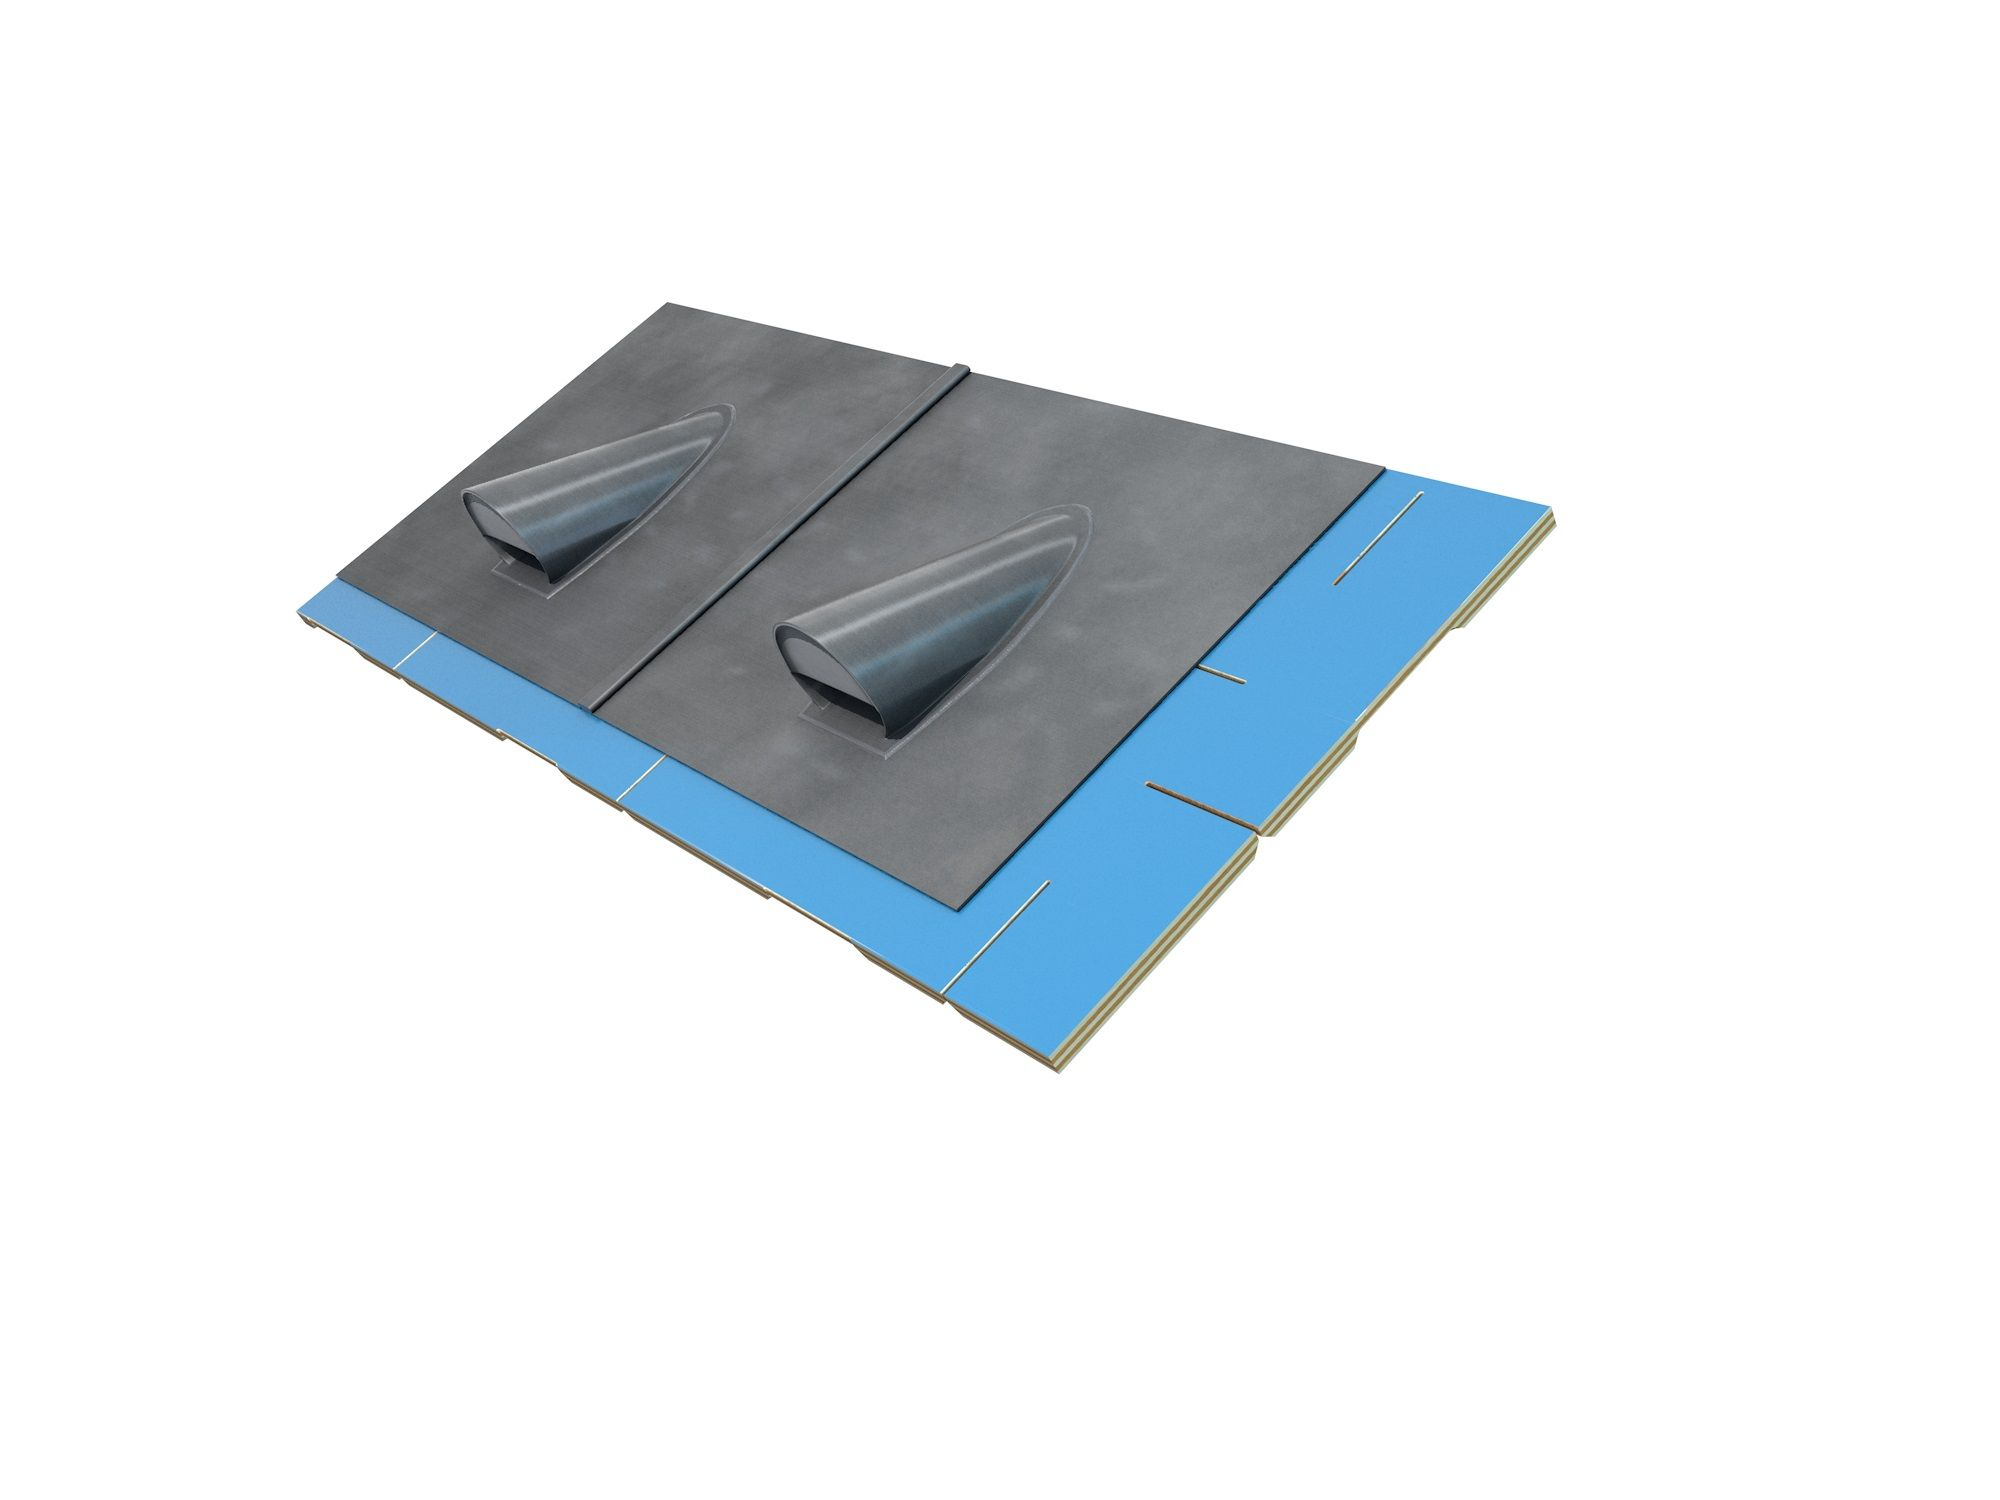 The pitched roof ventilator is designed for providing